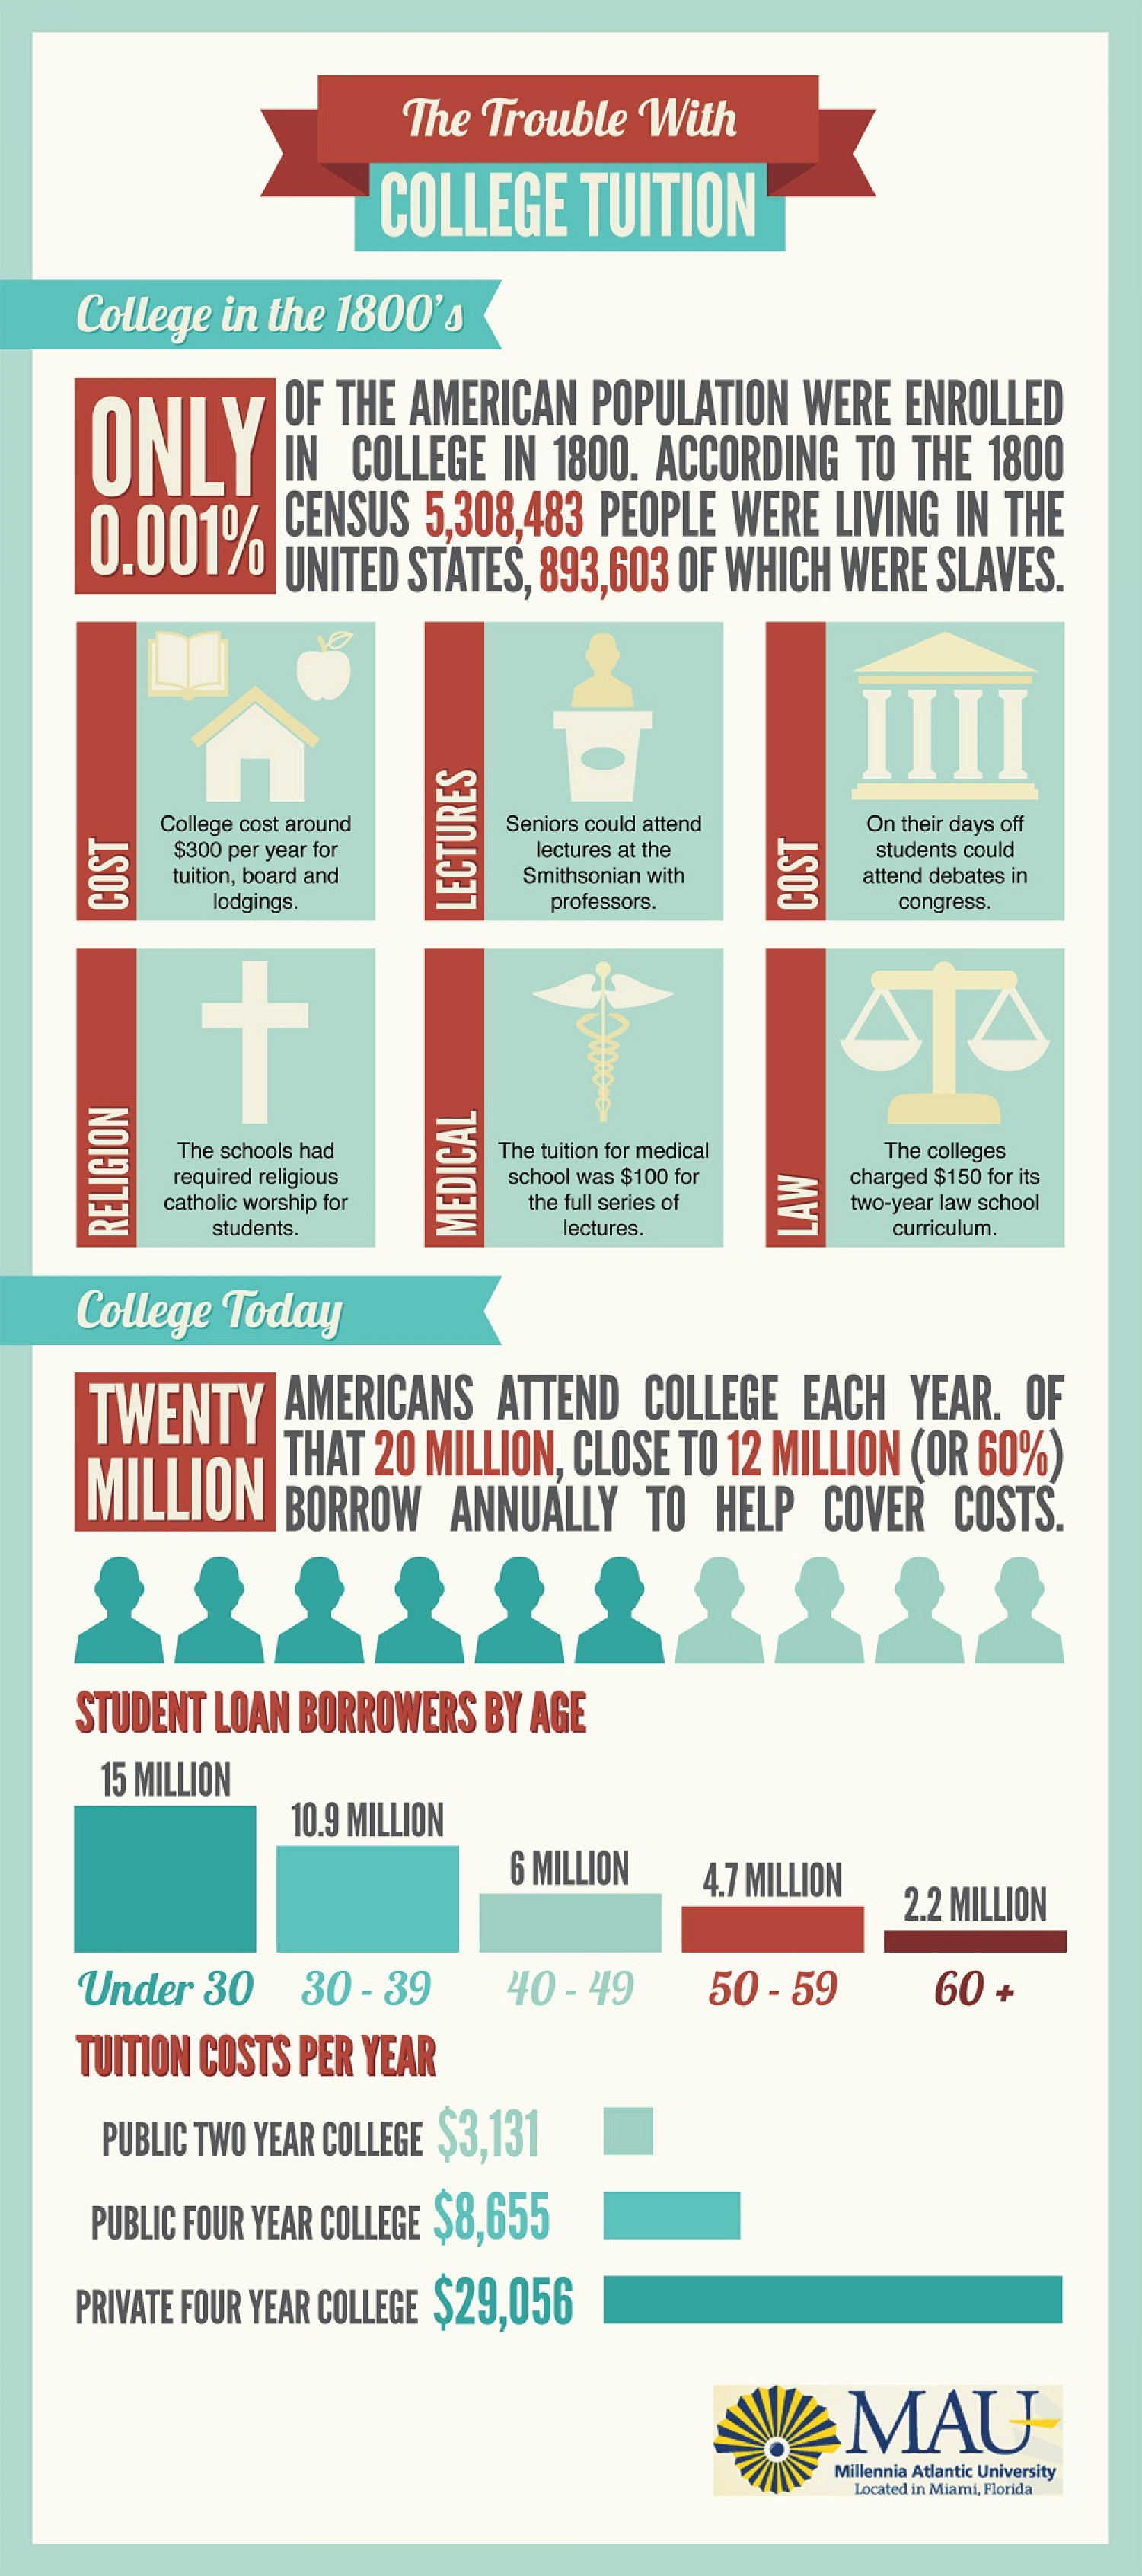 The Trouble With College Tuition  Visual. Cisco Refurbished Router Online Check Writing. What Mutual Funds To Invest In. Lowest Interest Rates On Mortgage Loans. San Antonio College Class Schedule. Health Assessment Course Online. The General Insurance Co Trenz Beauty Academy. Famous People Born In New Zealand. Medications For Deep Vein Thrombosis